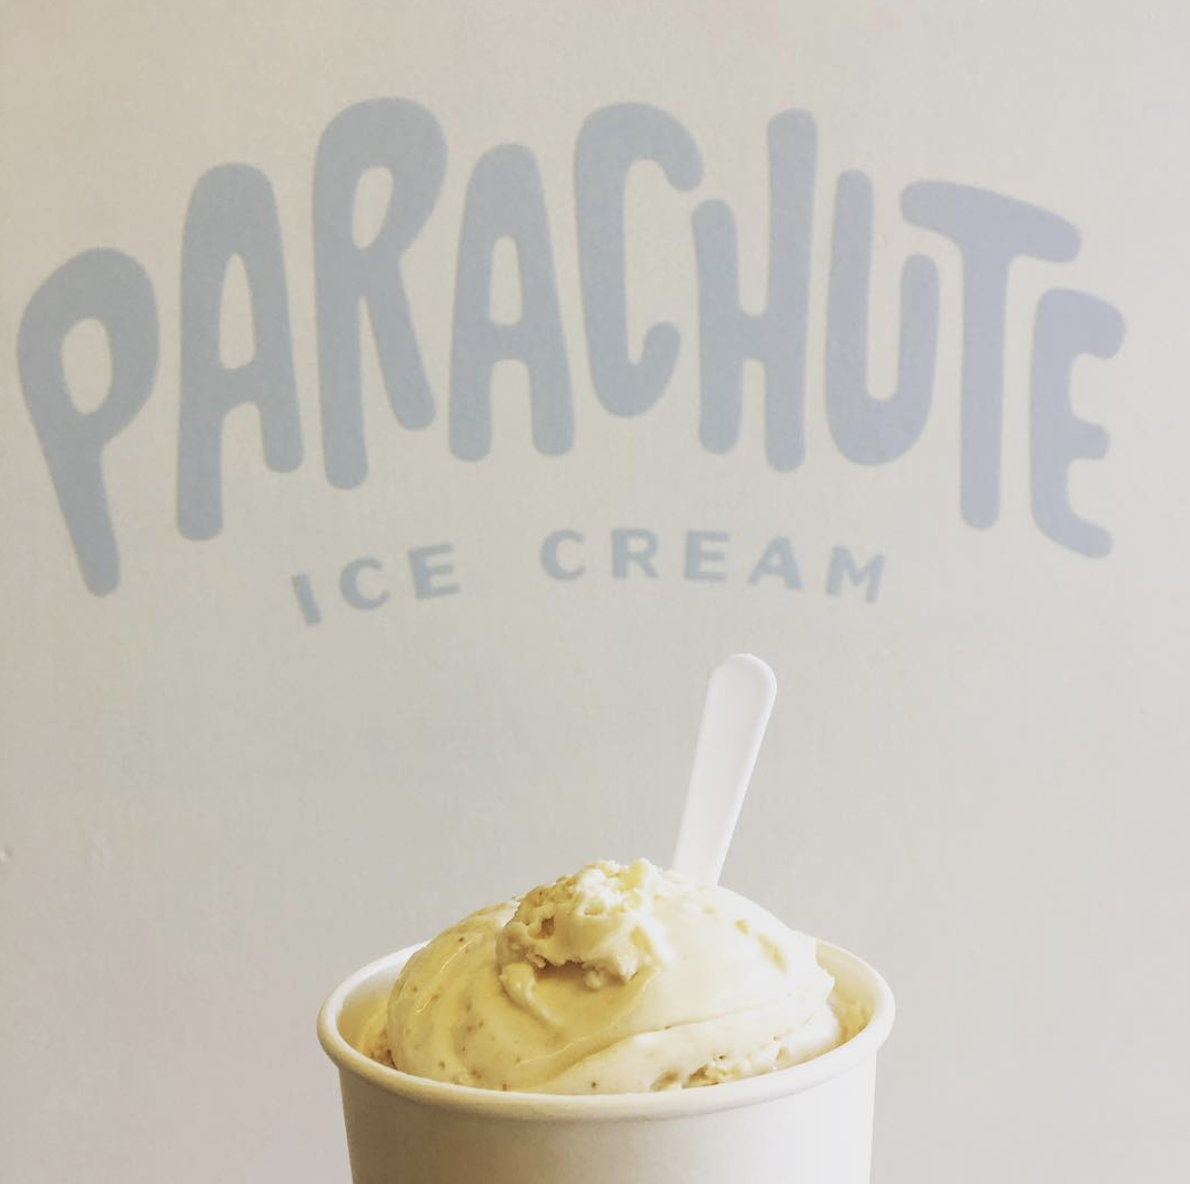 Barb: Parachute Earl Grey Icecream